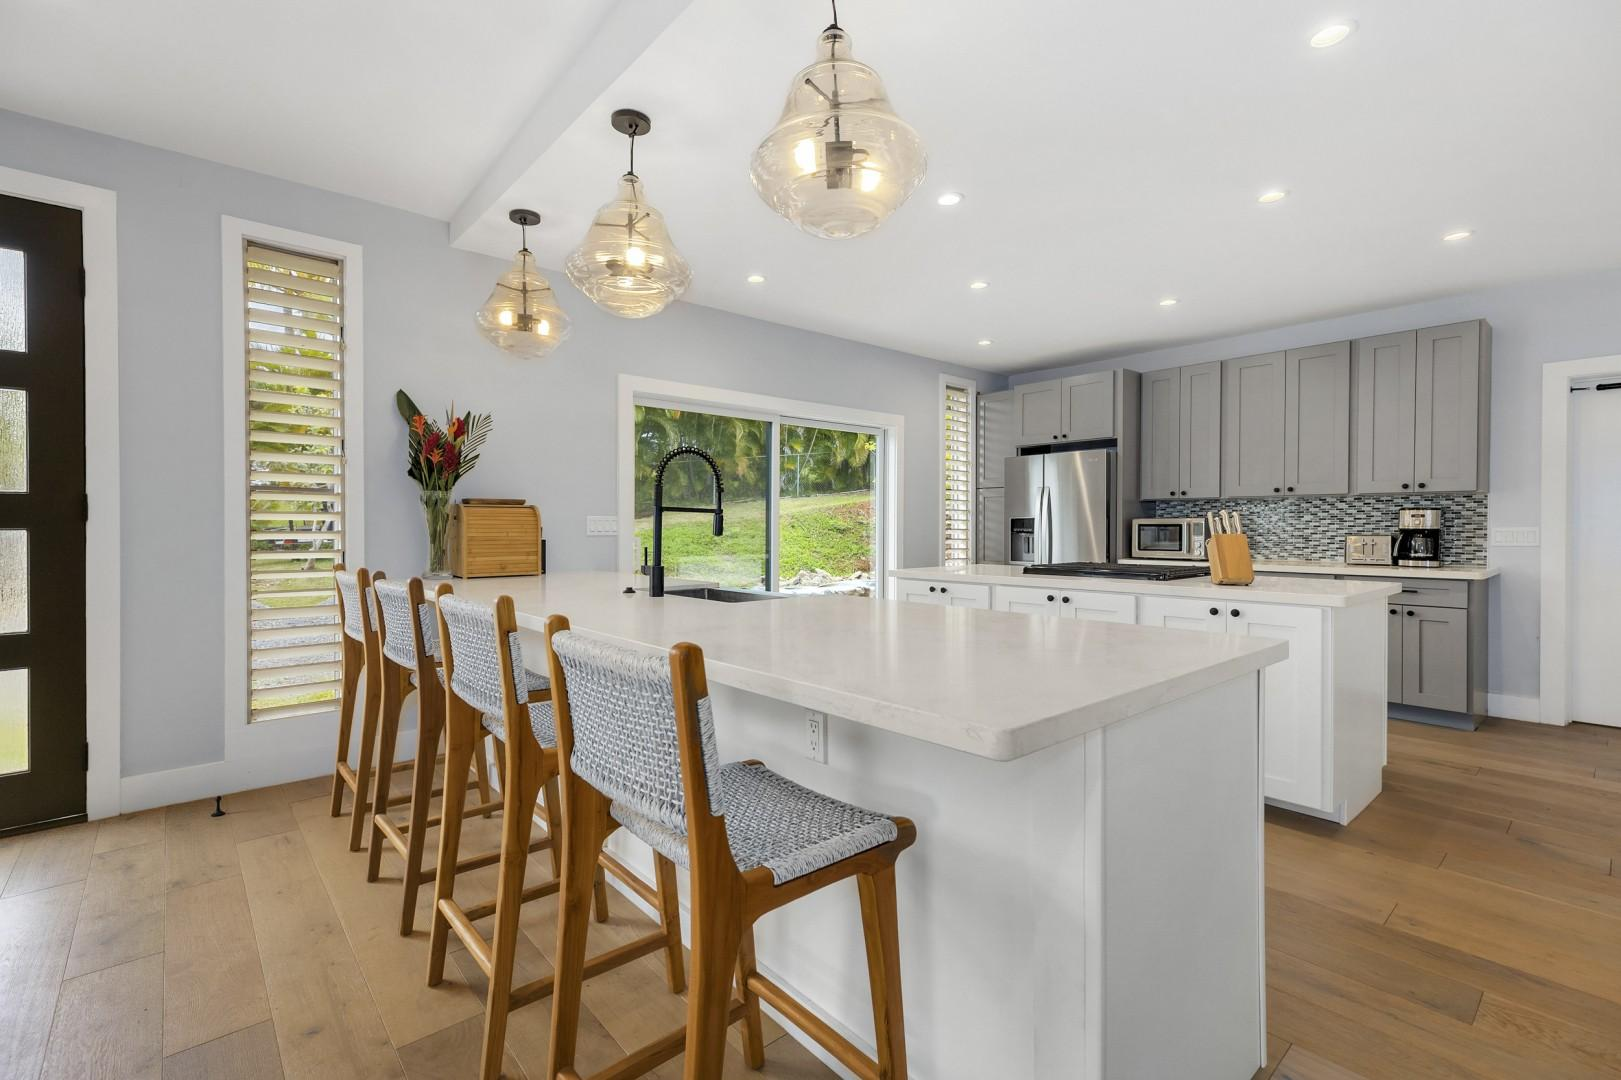 Spacious kitchen with custom cabinetry, gas stovetop, and stainless appliances. Half bath located in the kitchen.